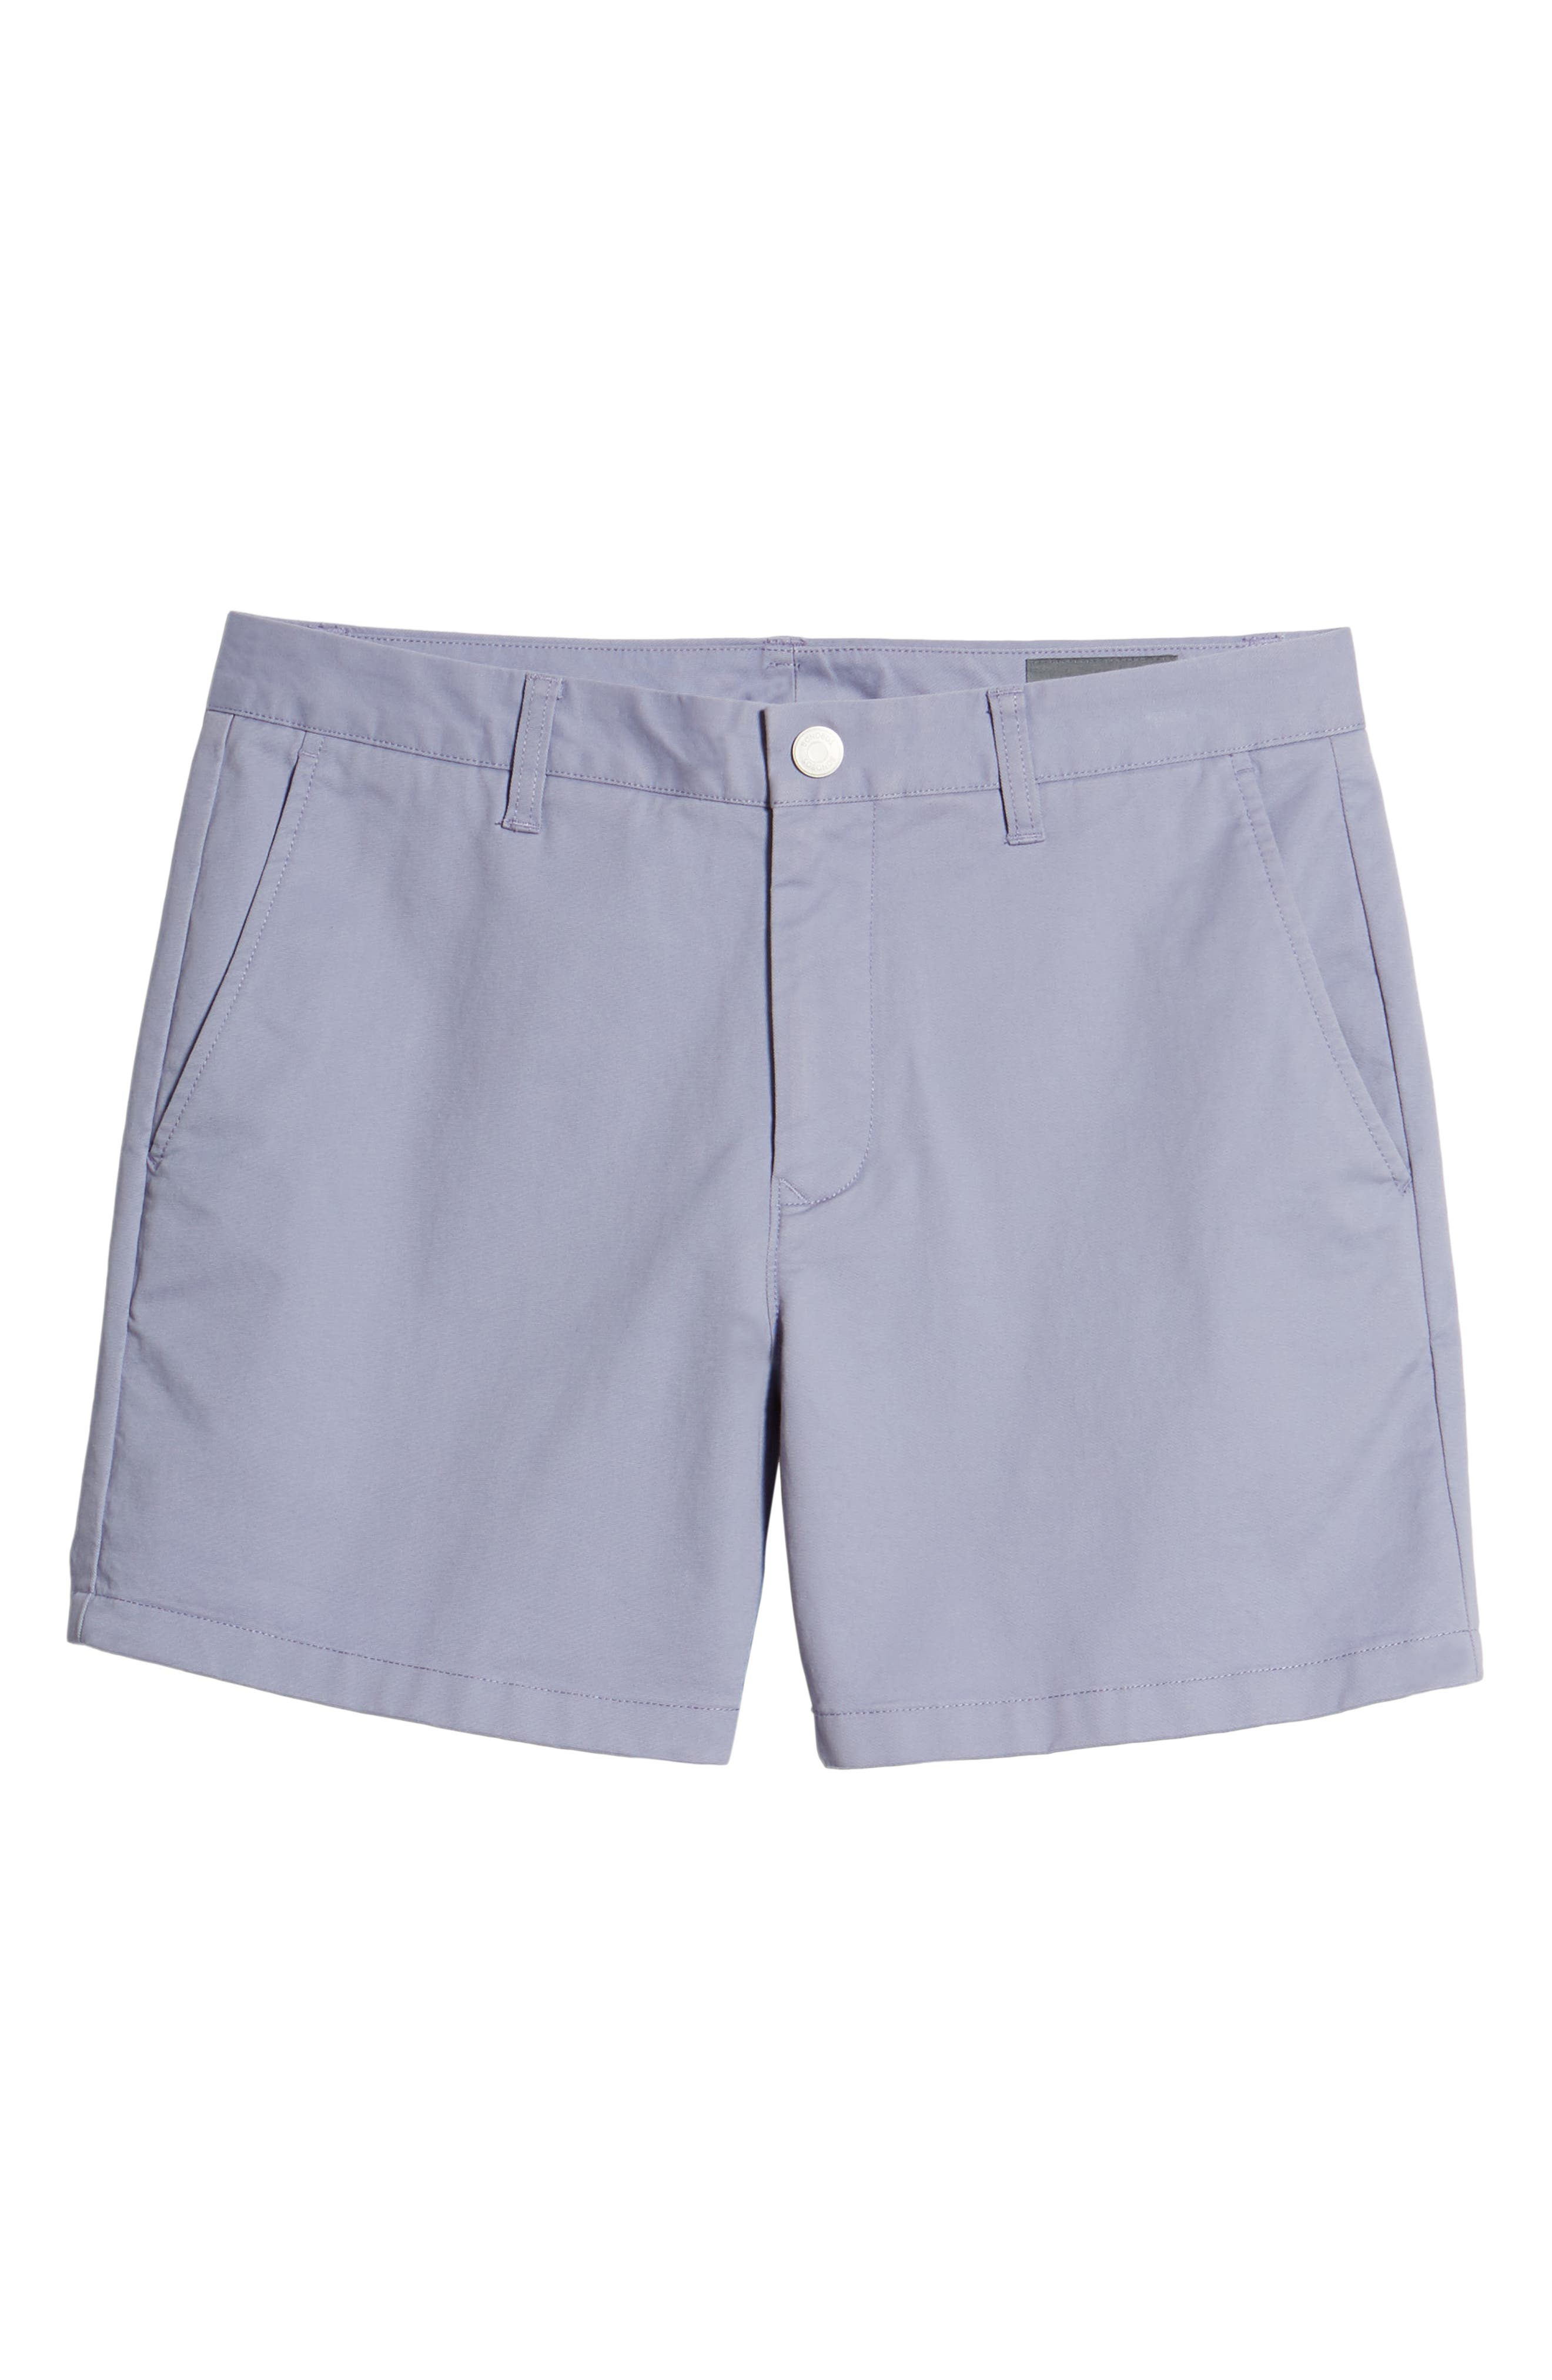 Stretch Washed Chino 5-Inch Shorts,                             Alternate thumbnail 155, color,